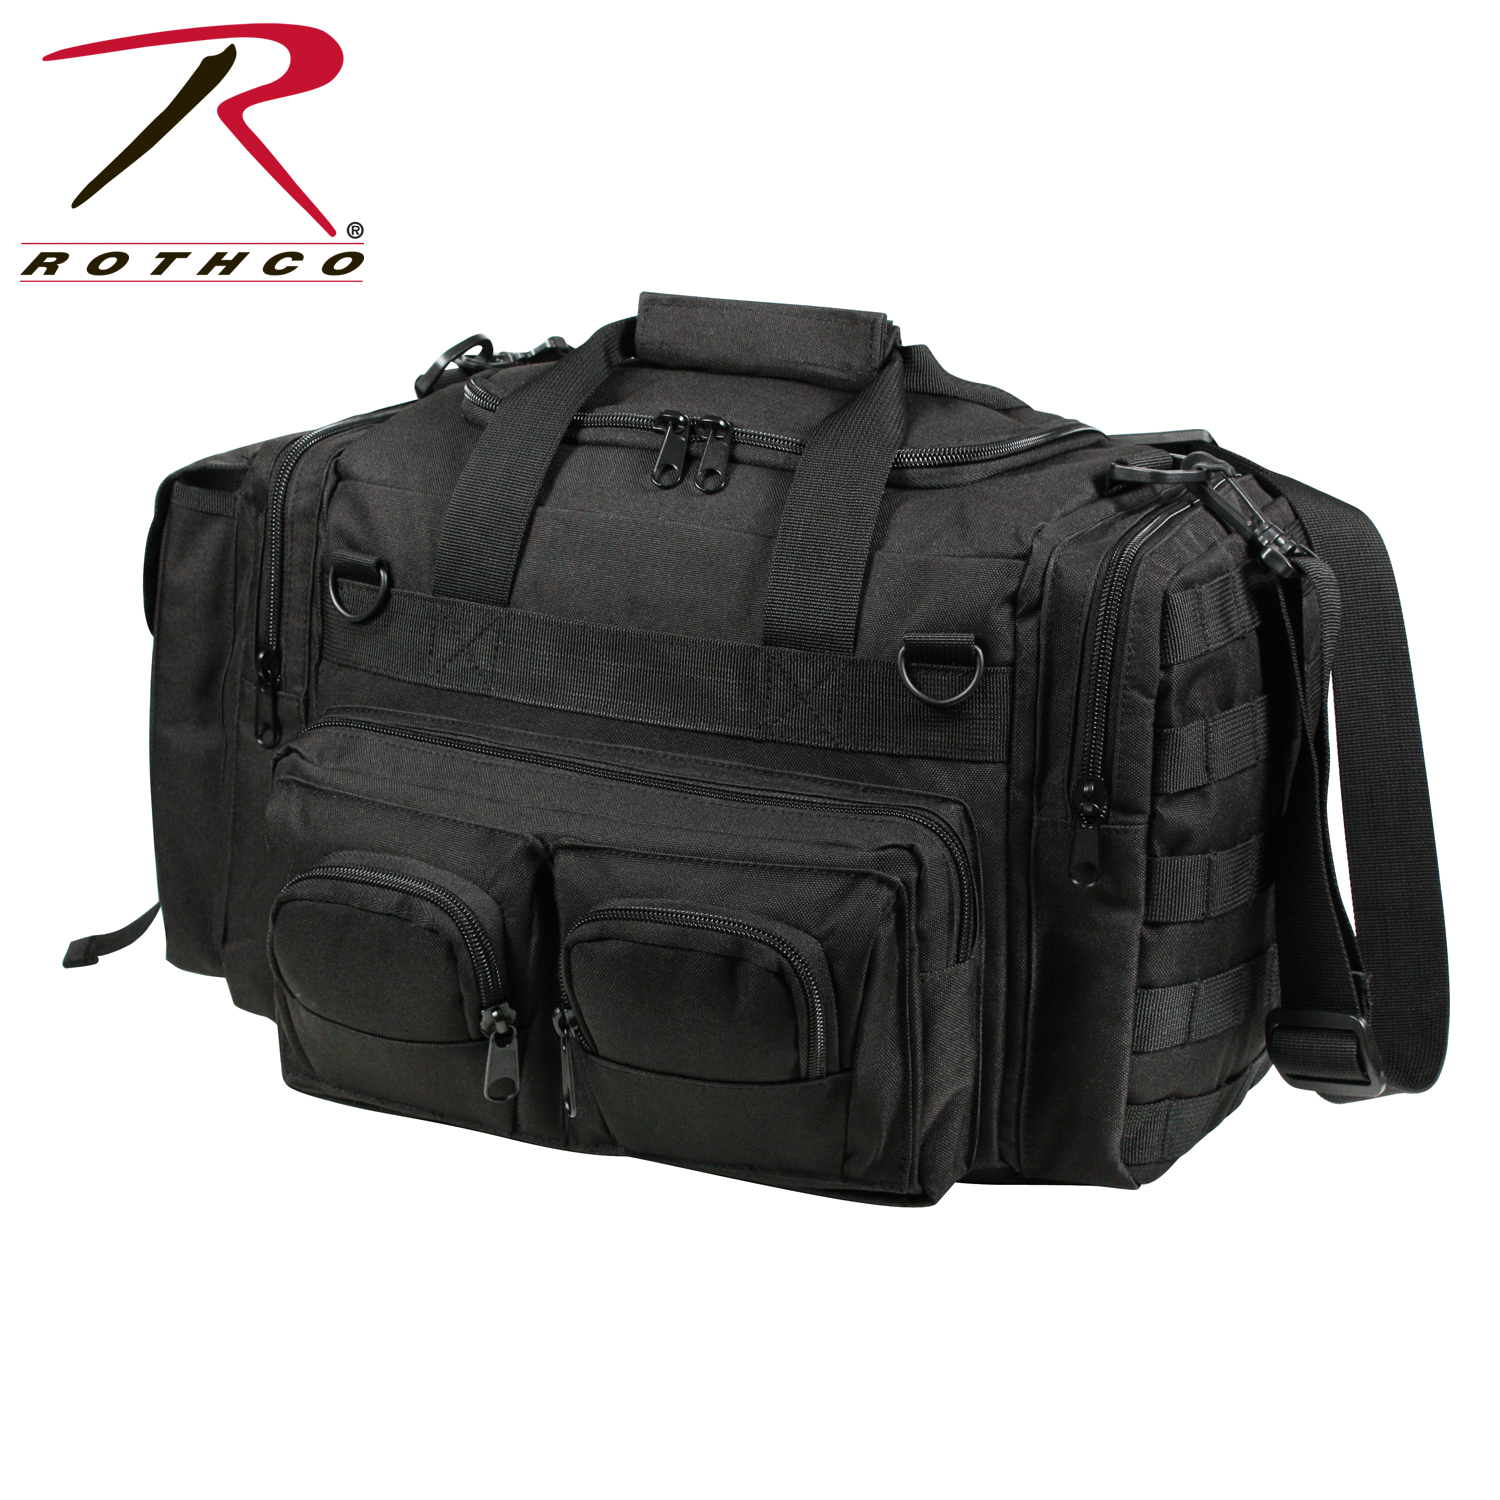 cc6c79c4c0 Rothco Concealed Carry Bag